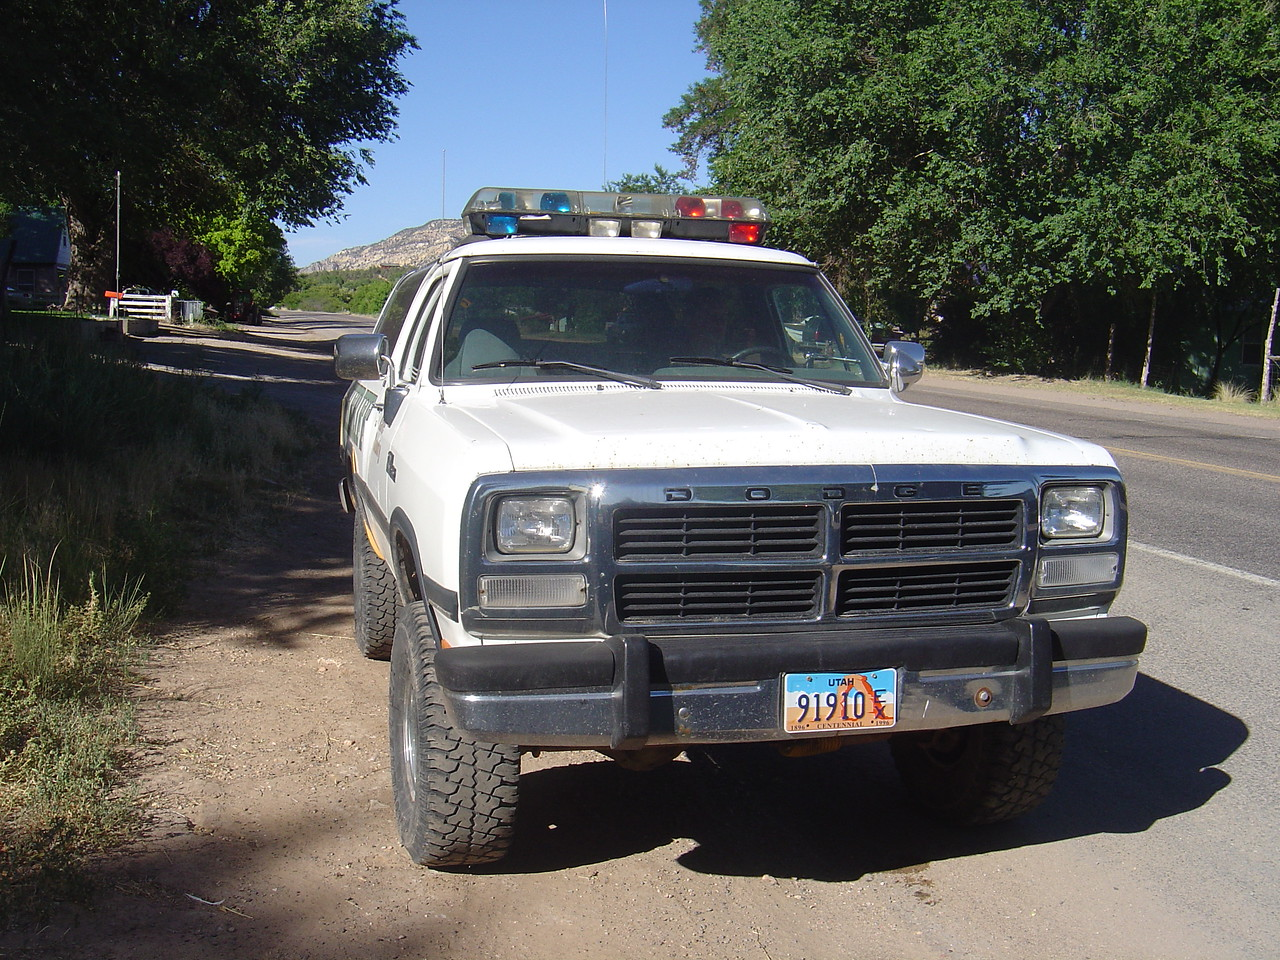 This is the patrol vehicle at the southern entrace to Mt. Carmel